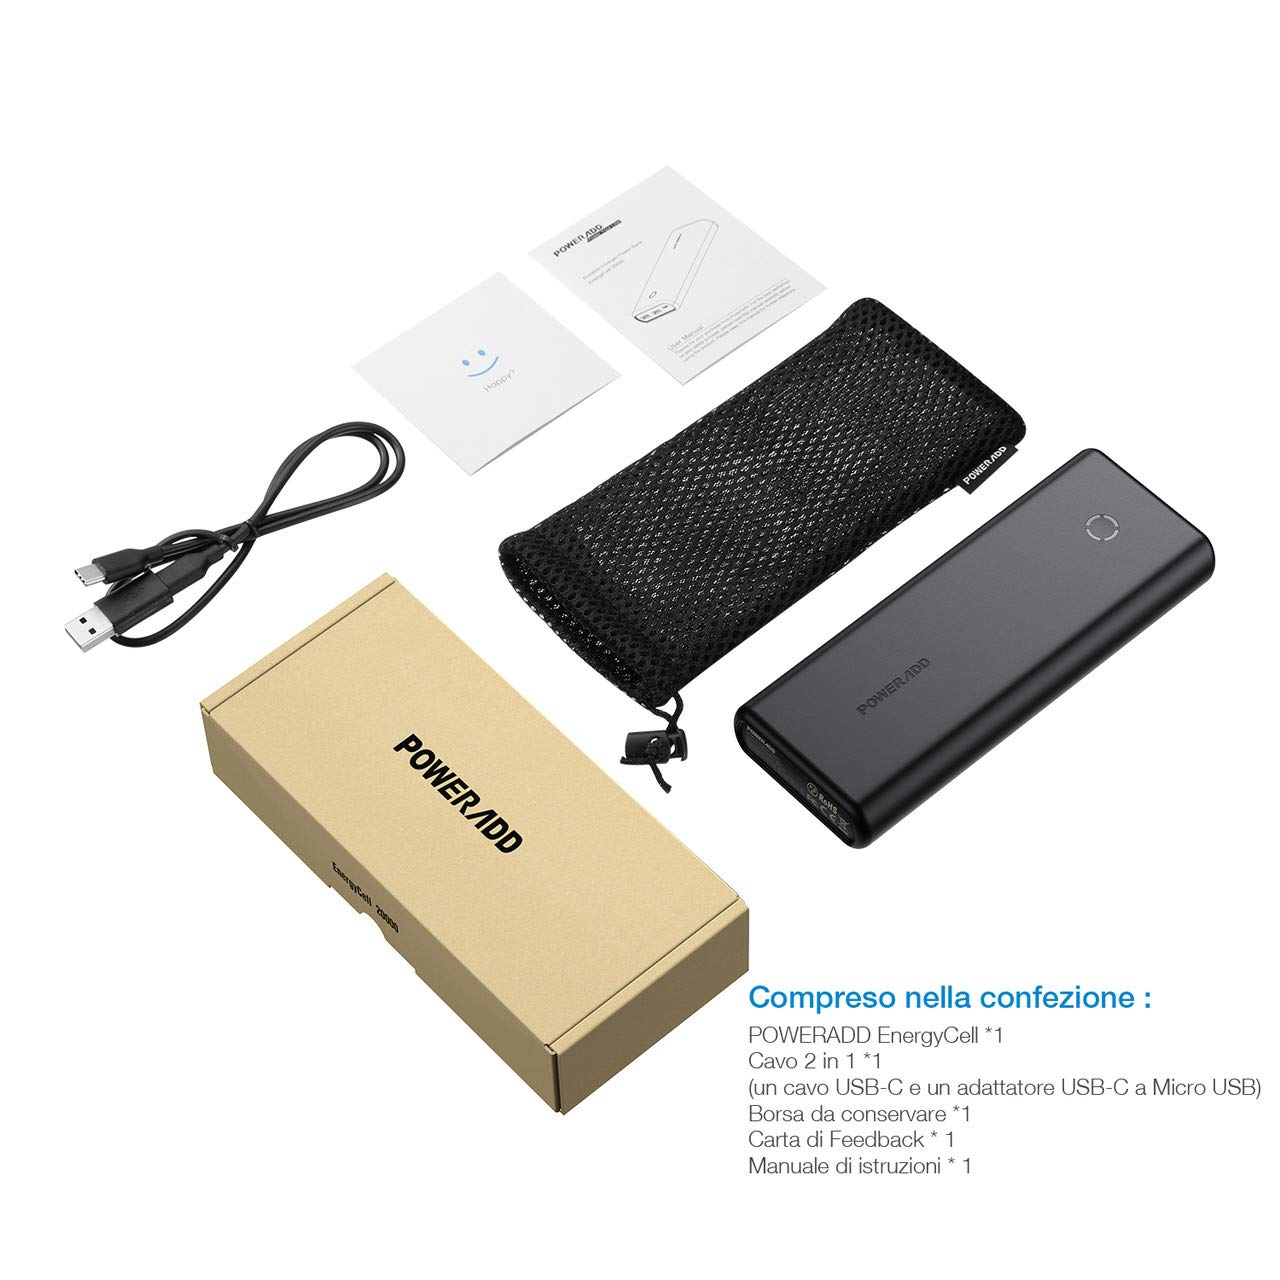 POWERADD Powerbank Caricabatterie Portatile 20000mAh Power Delivery con Porta TypeC (PD) e 2 Output USB (QC 3.0 per cellulari, Tablet e Altri dispositivi - (Un Cavo 2 in 1)